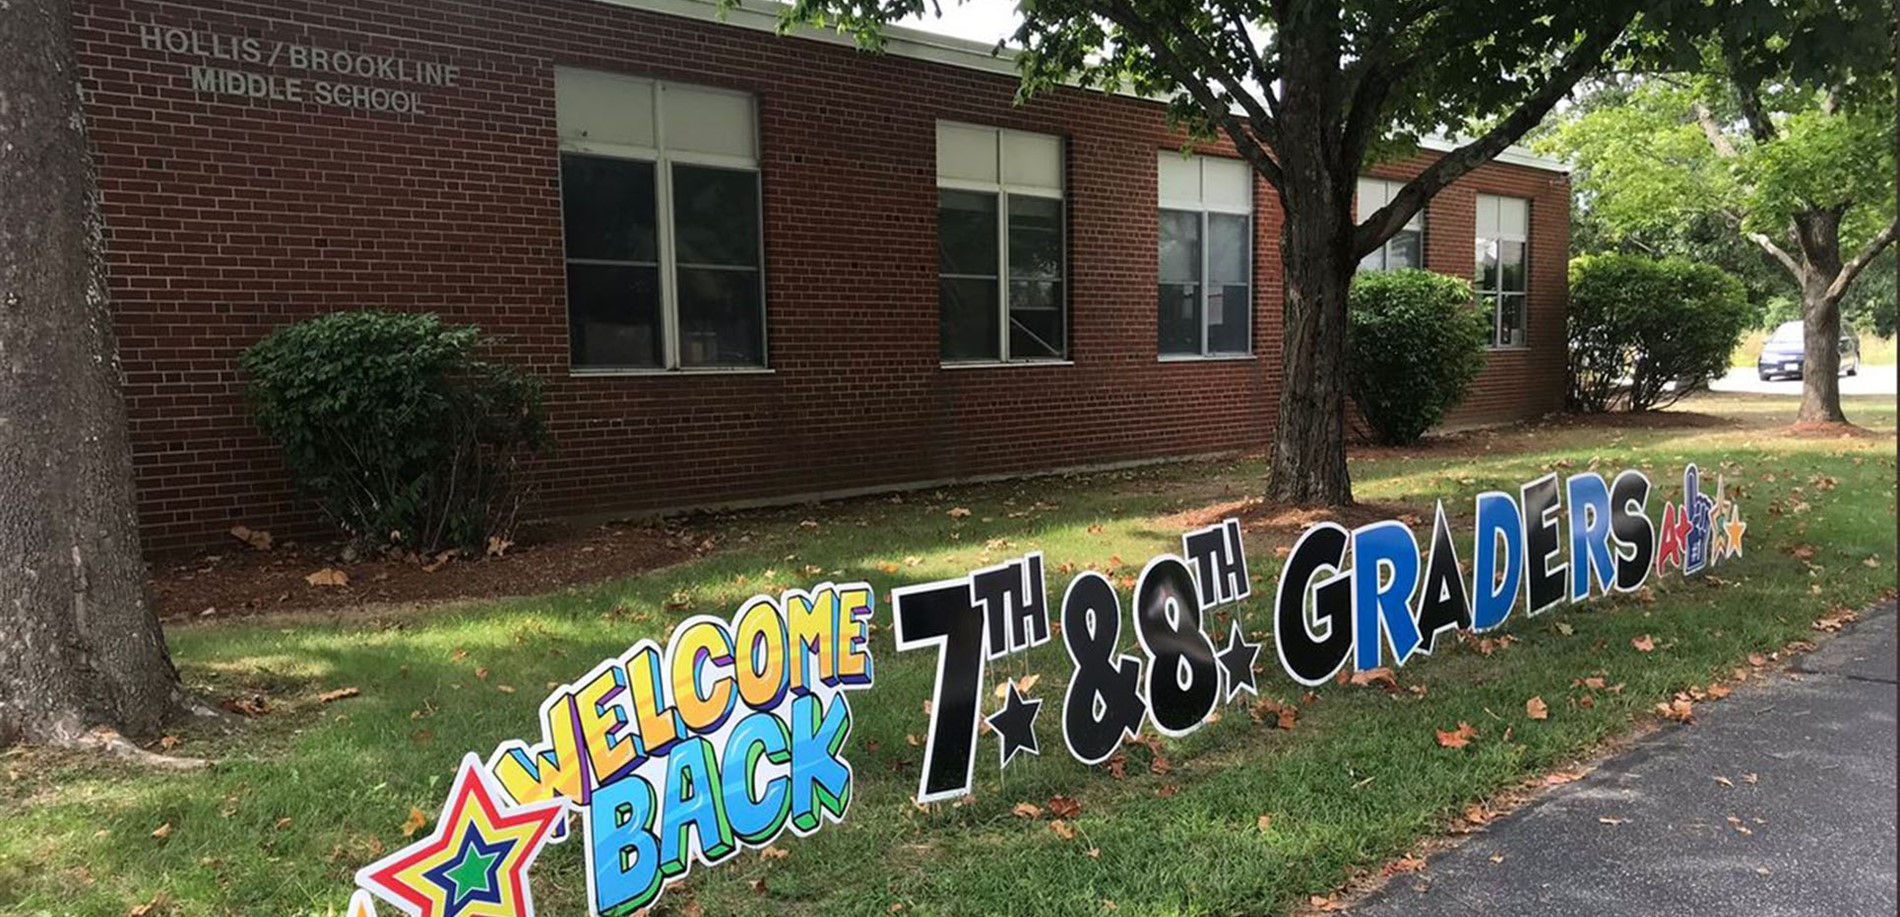 Welcome Back HBMS lawn sign